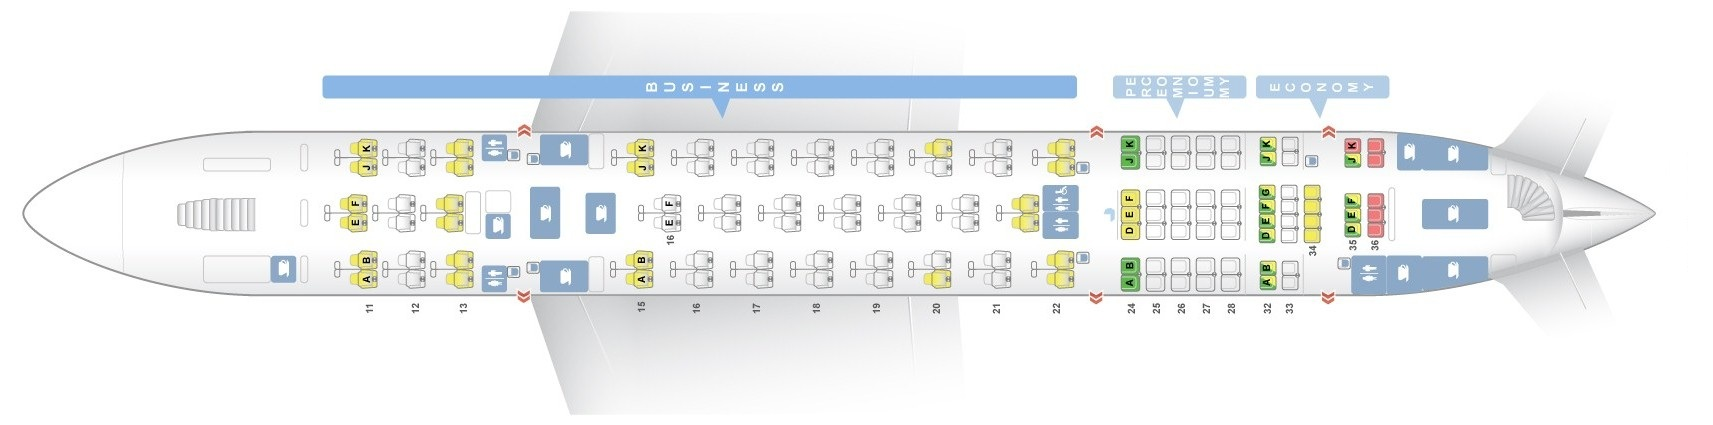 Seat map Airbus A380-800 Qantas Airways. Best seats in the plane